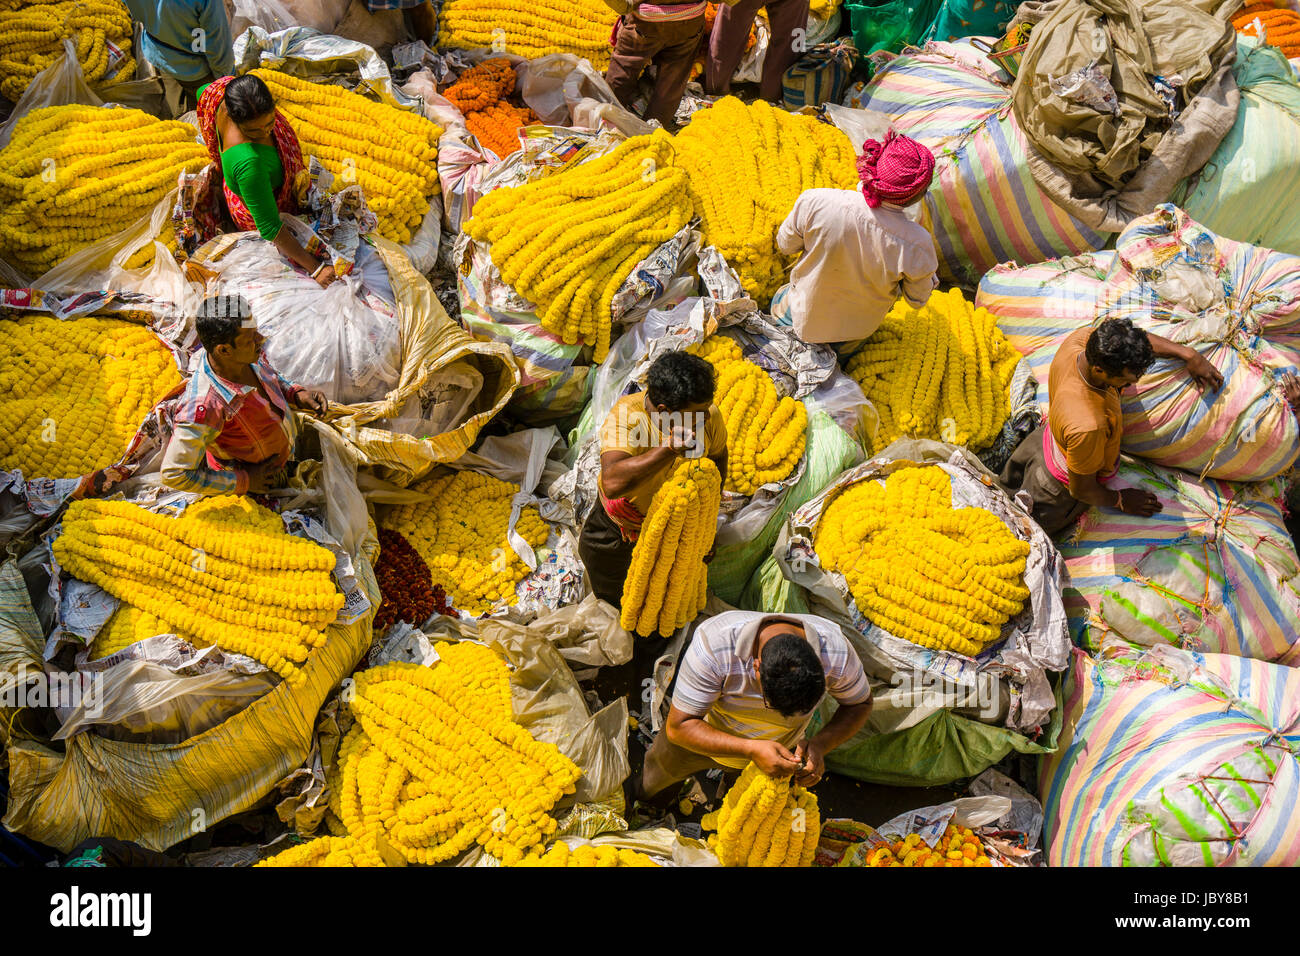 Heaps of colorful marygold flowers are sold by vendors on the daily flowermarket below Howrah Bridge - Stock Image